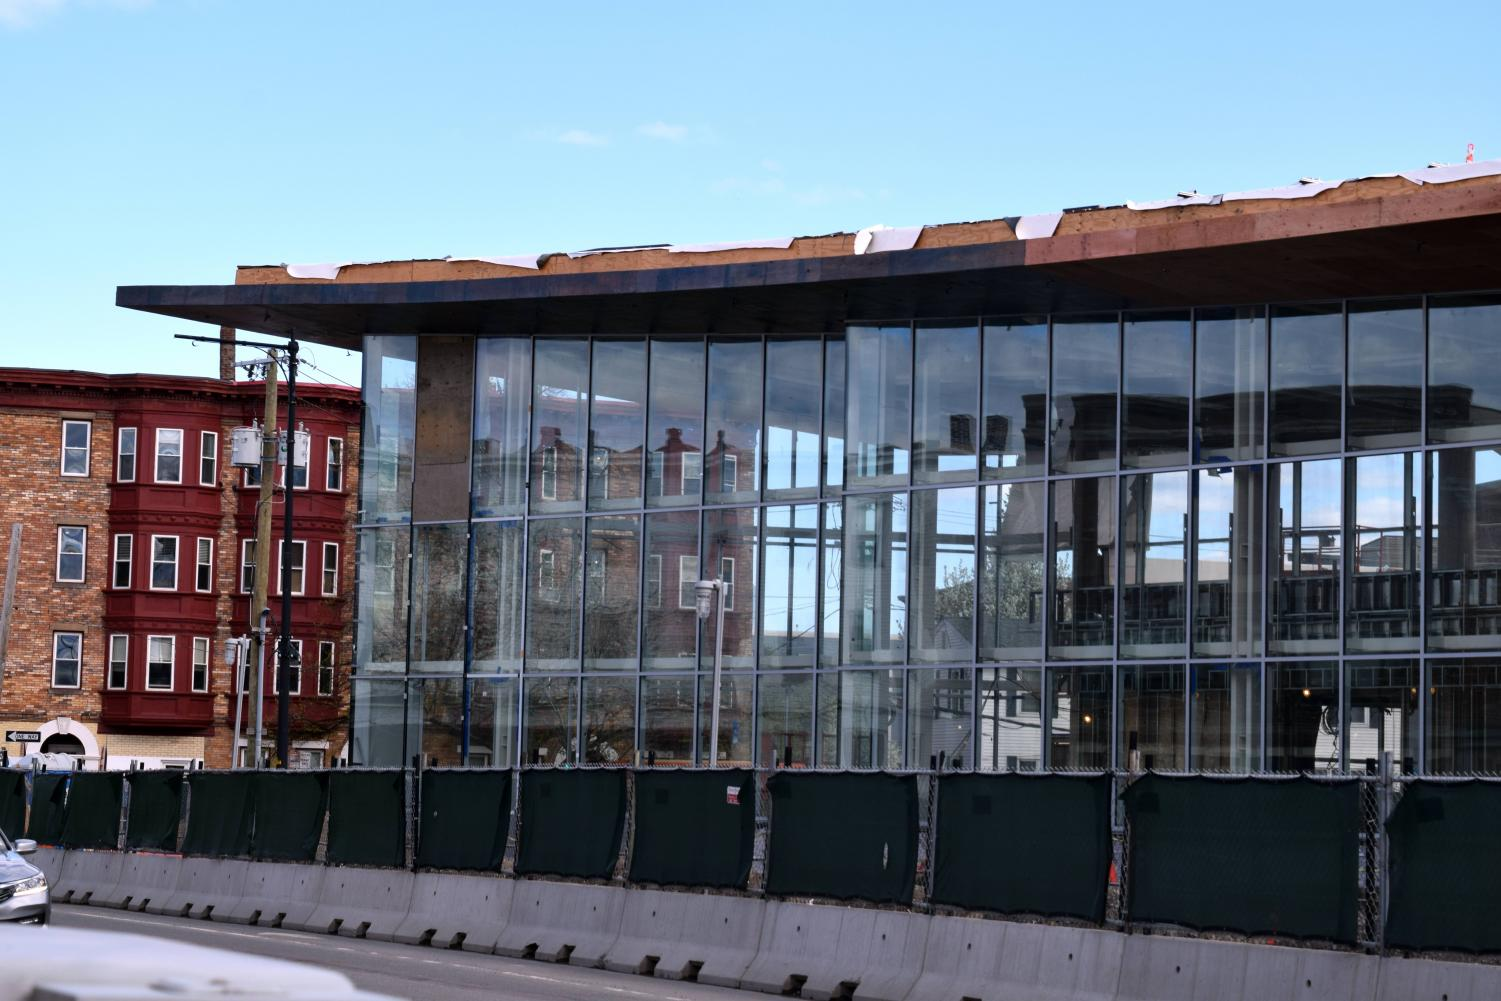 The Cambridge Street Upper School is currently being renovated as part of the Innovation Agenda.